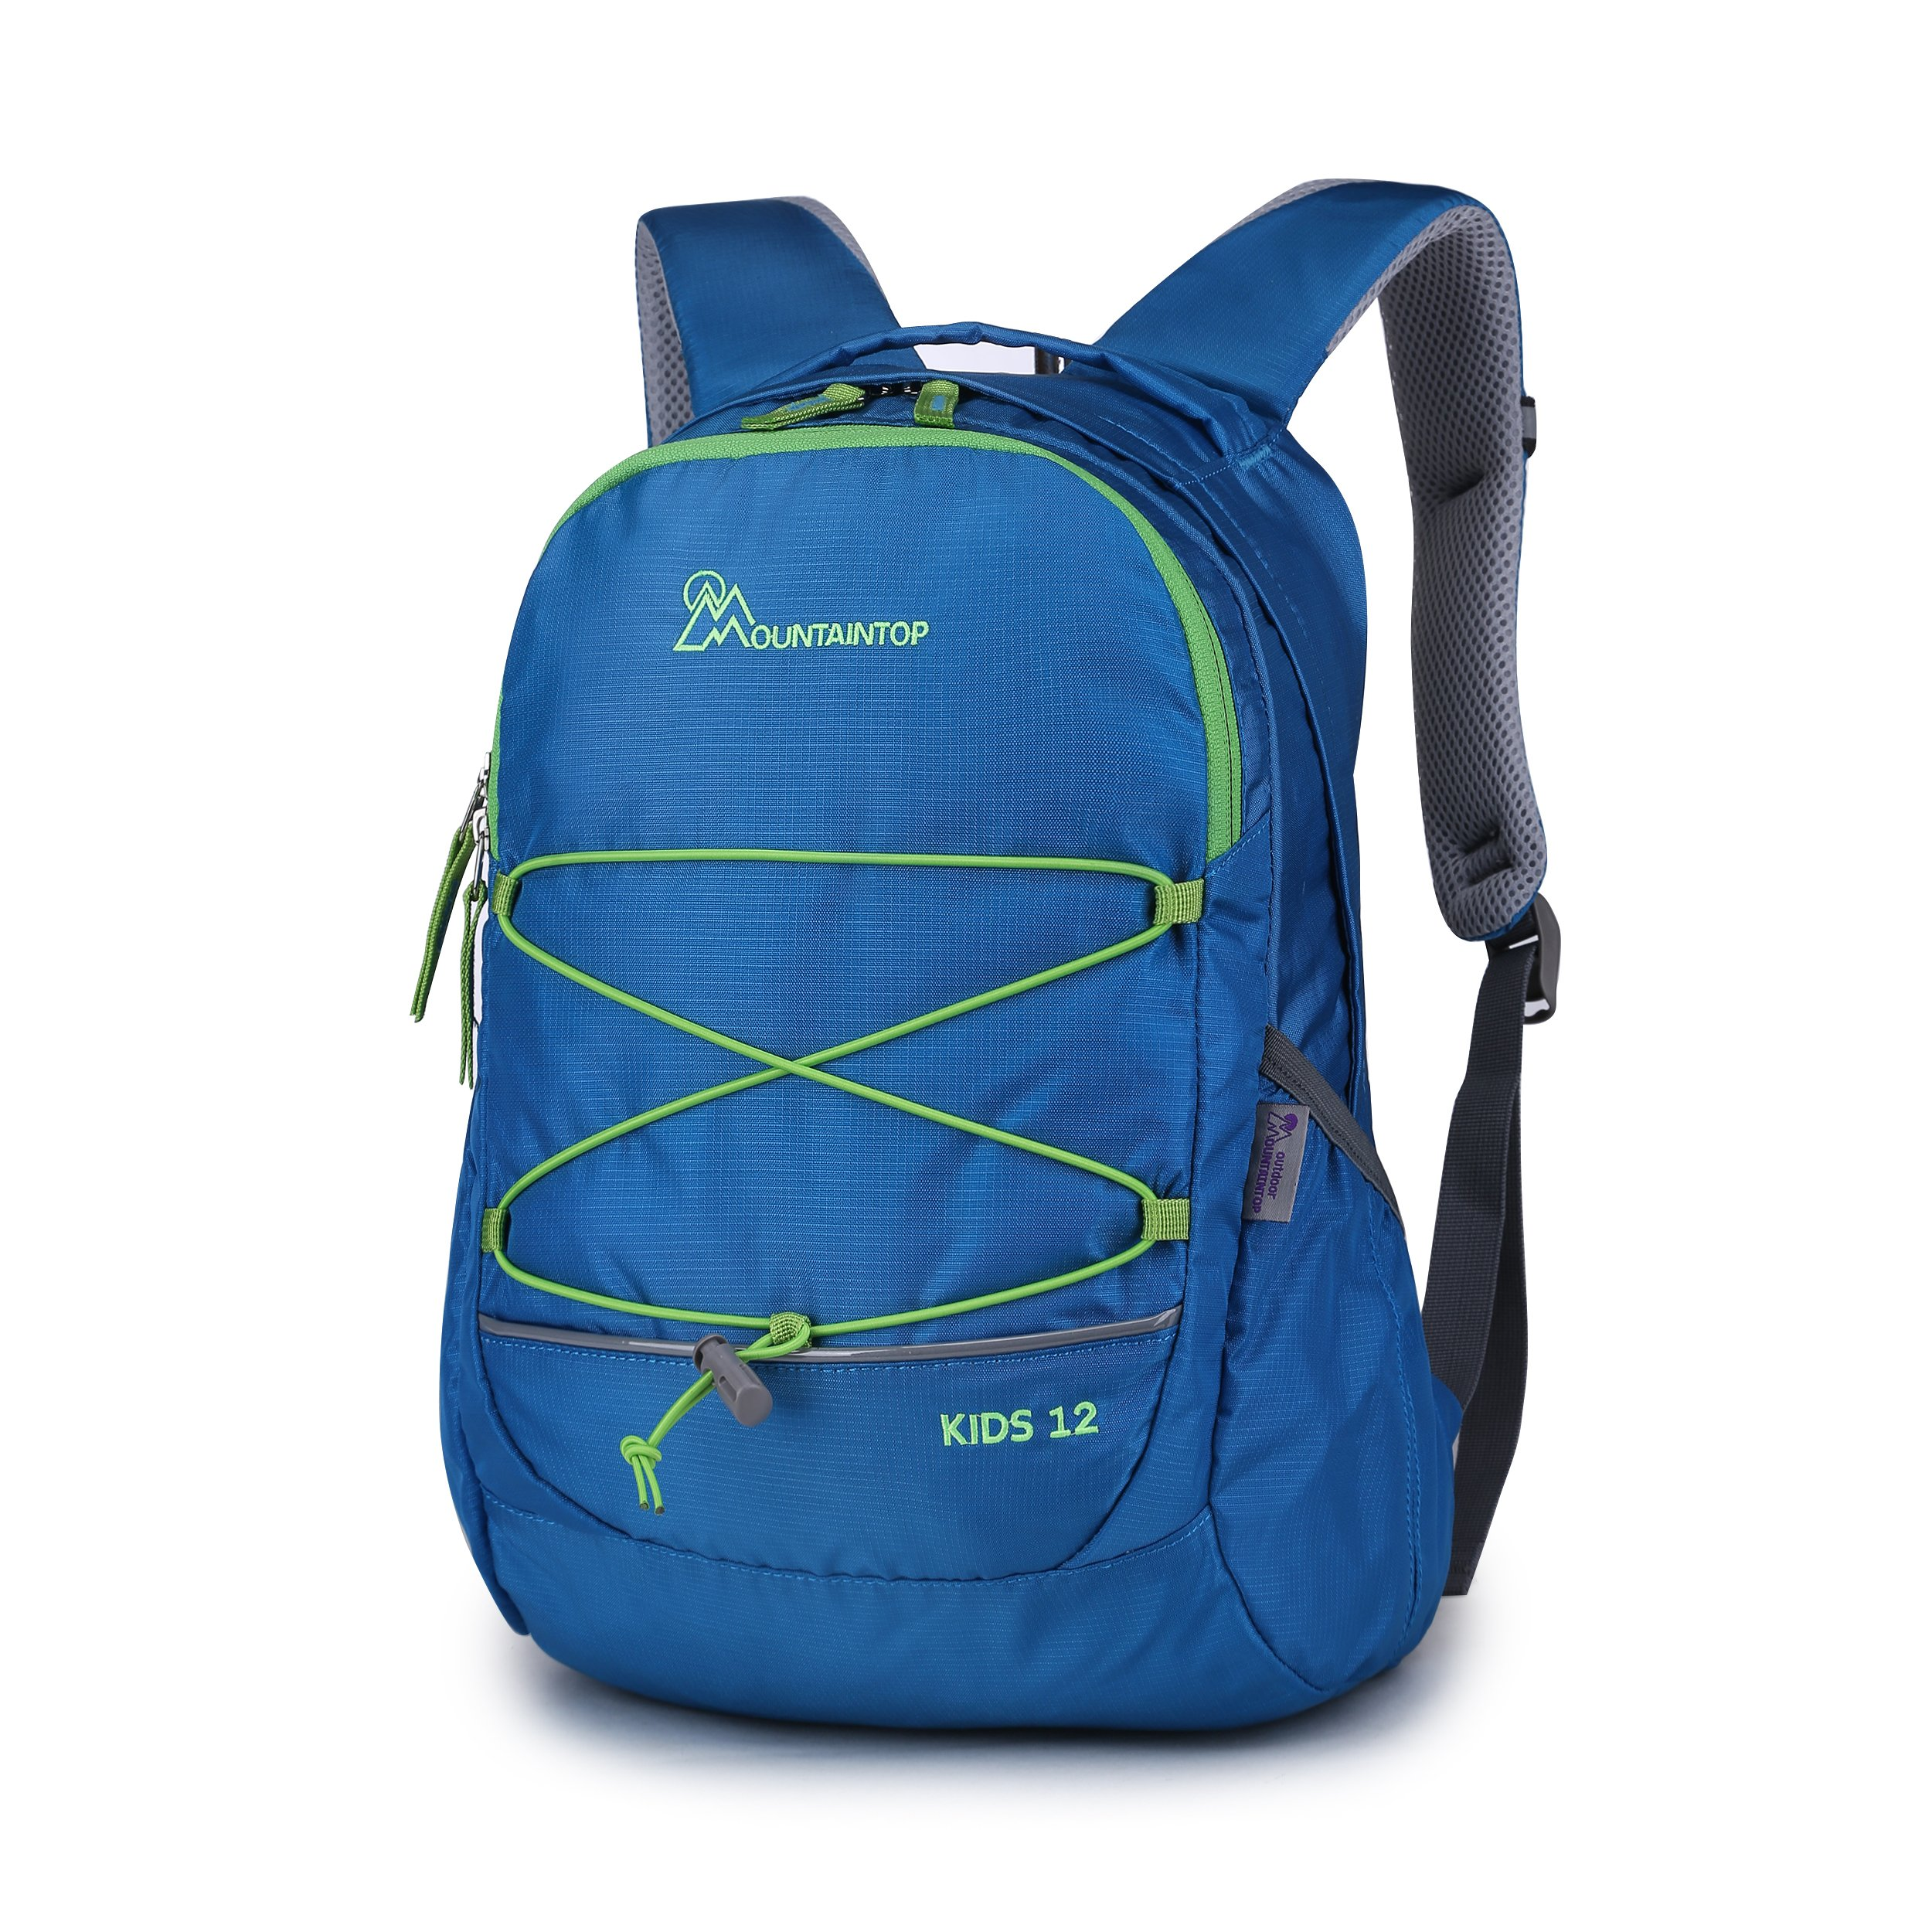 Mountaintop Kids Backpack for School, Travel, Hiking by MOUNTAINTOP